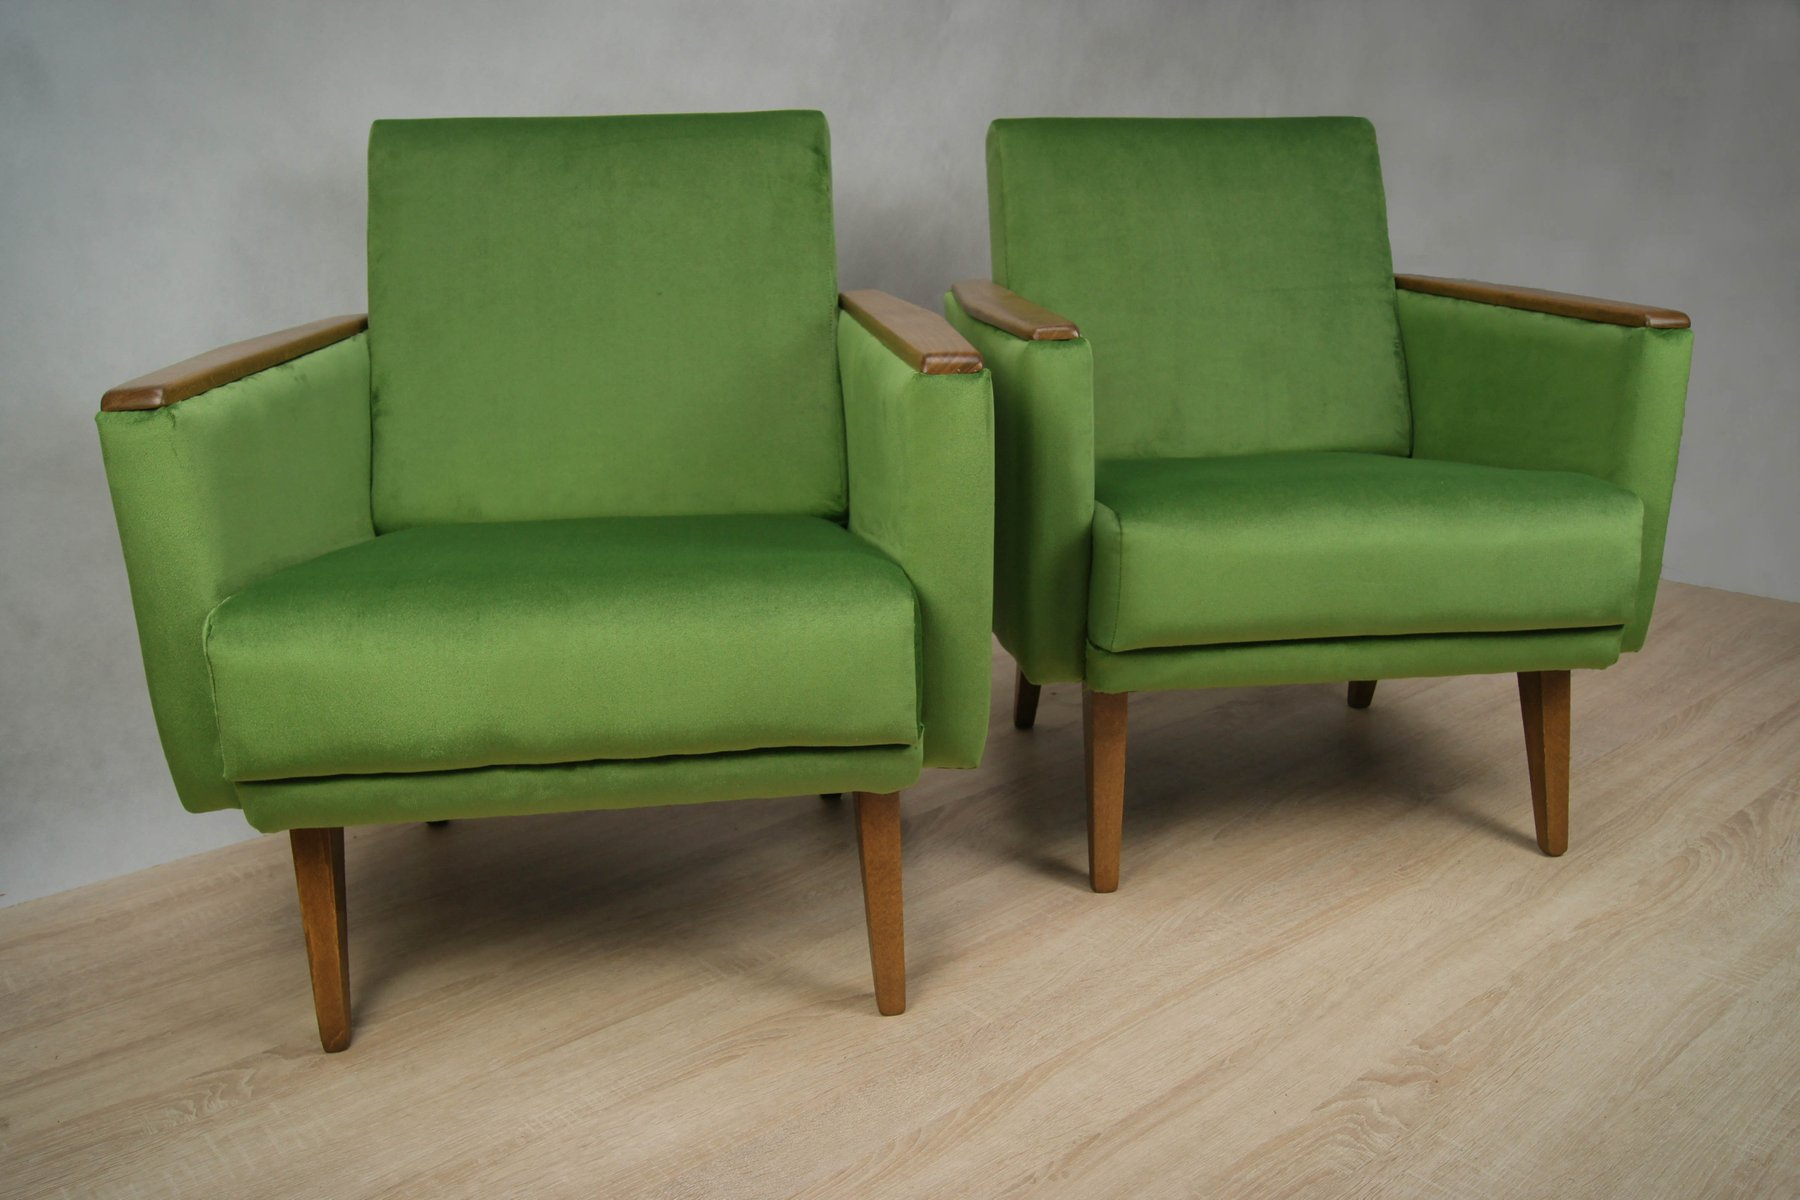 German green armchairs 1960s set of 2 for sale at pamono for 2 armchairs for sale